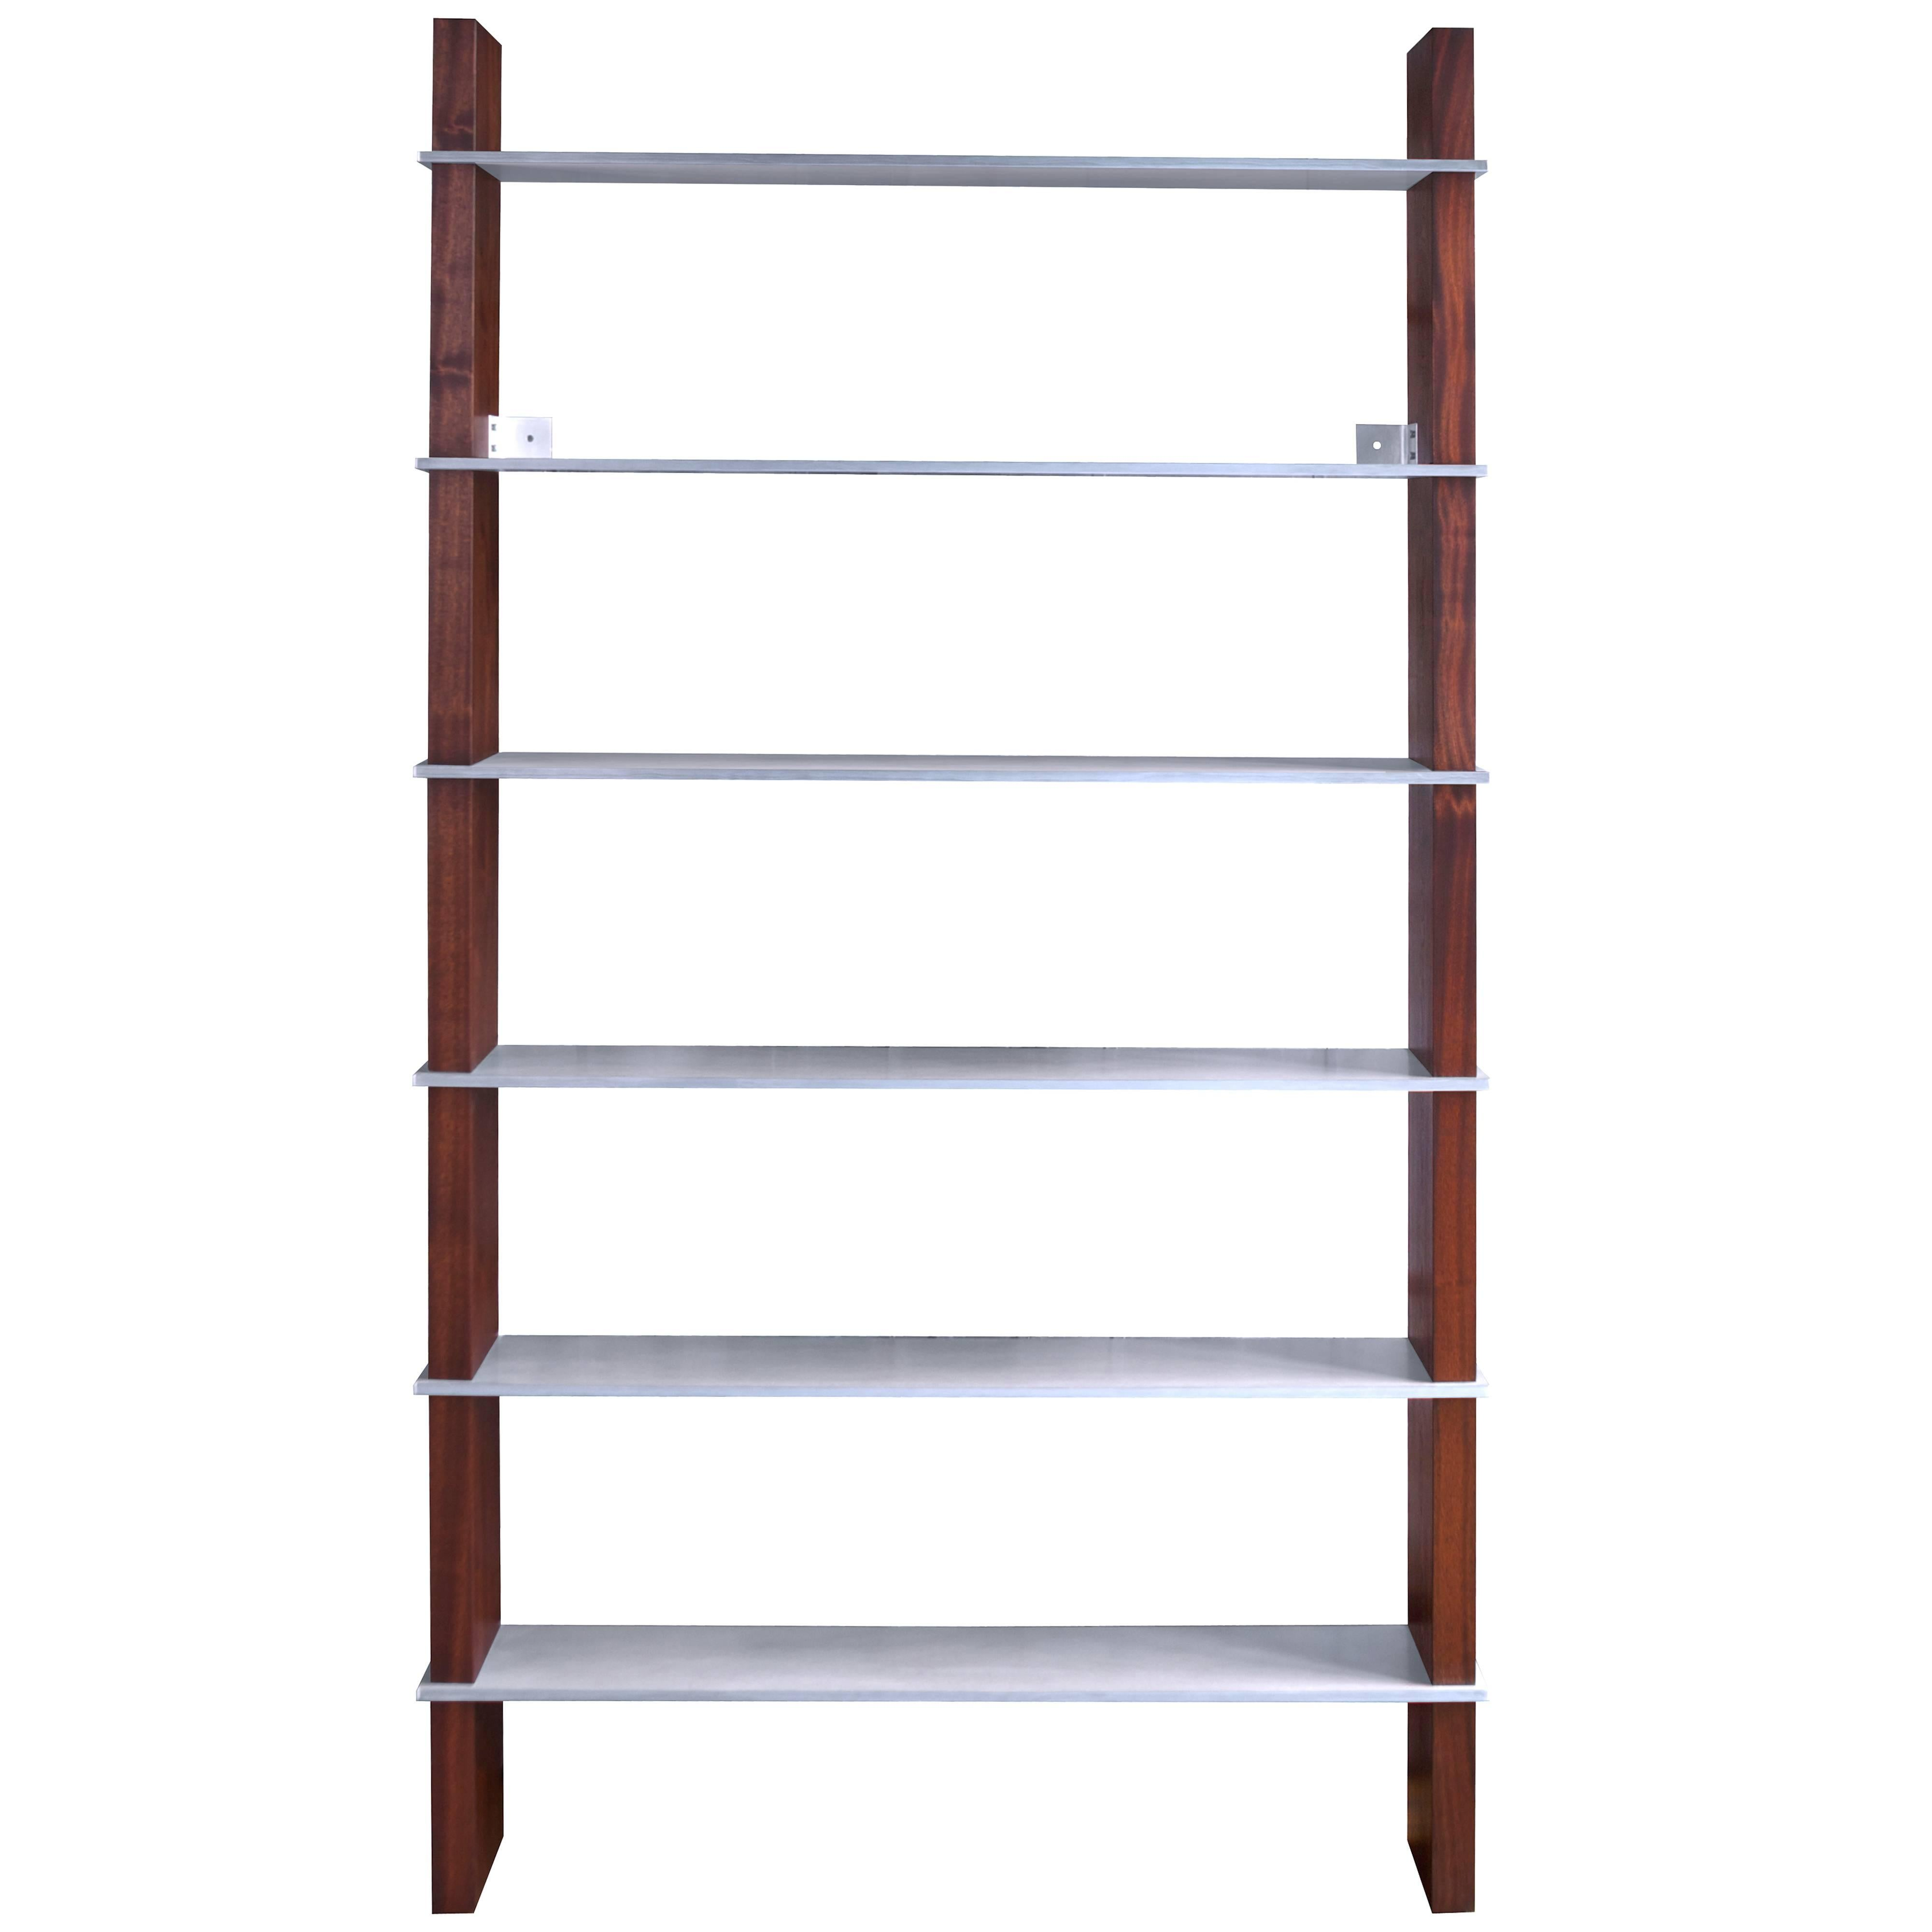 Biblios Bookcase in Walnut and Aluminum- handcrafted by Richard Wrightman Design